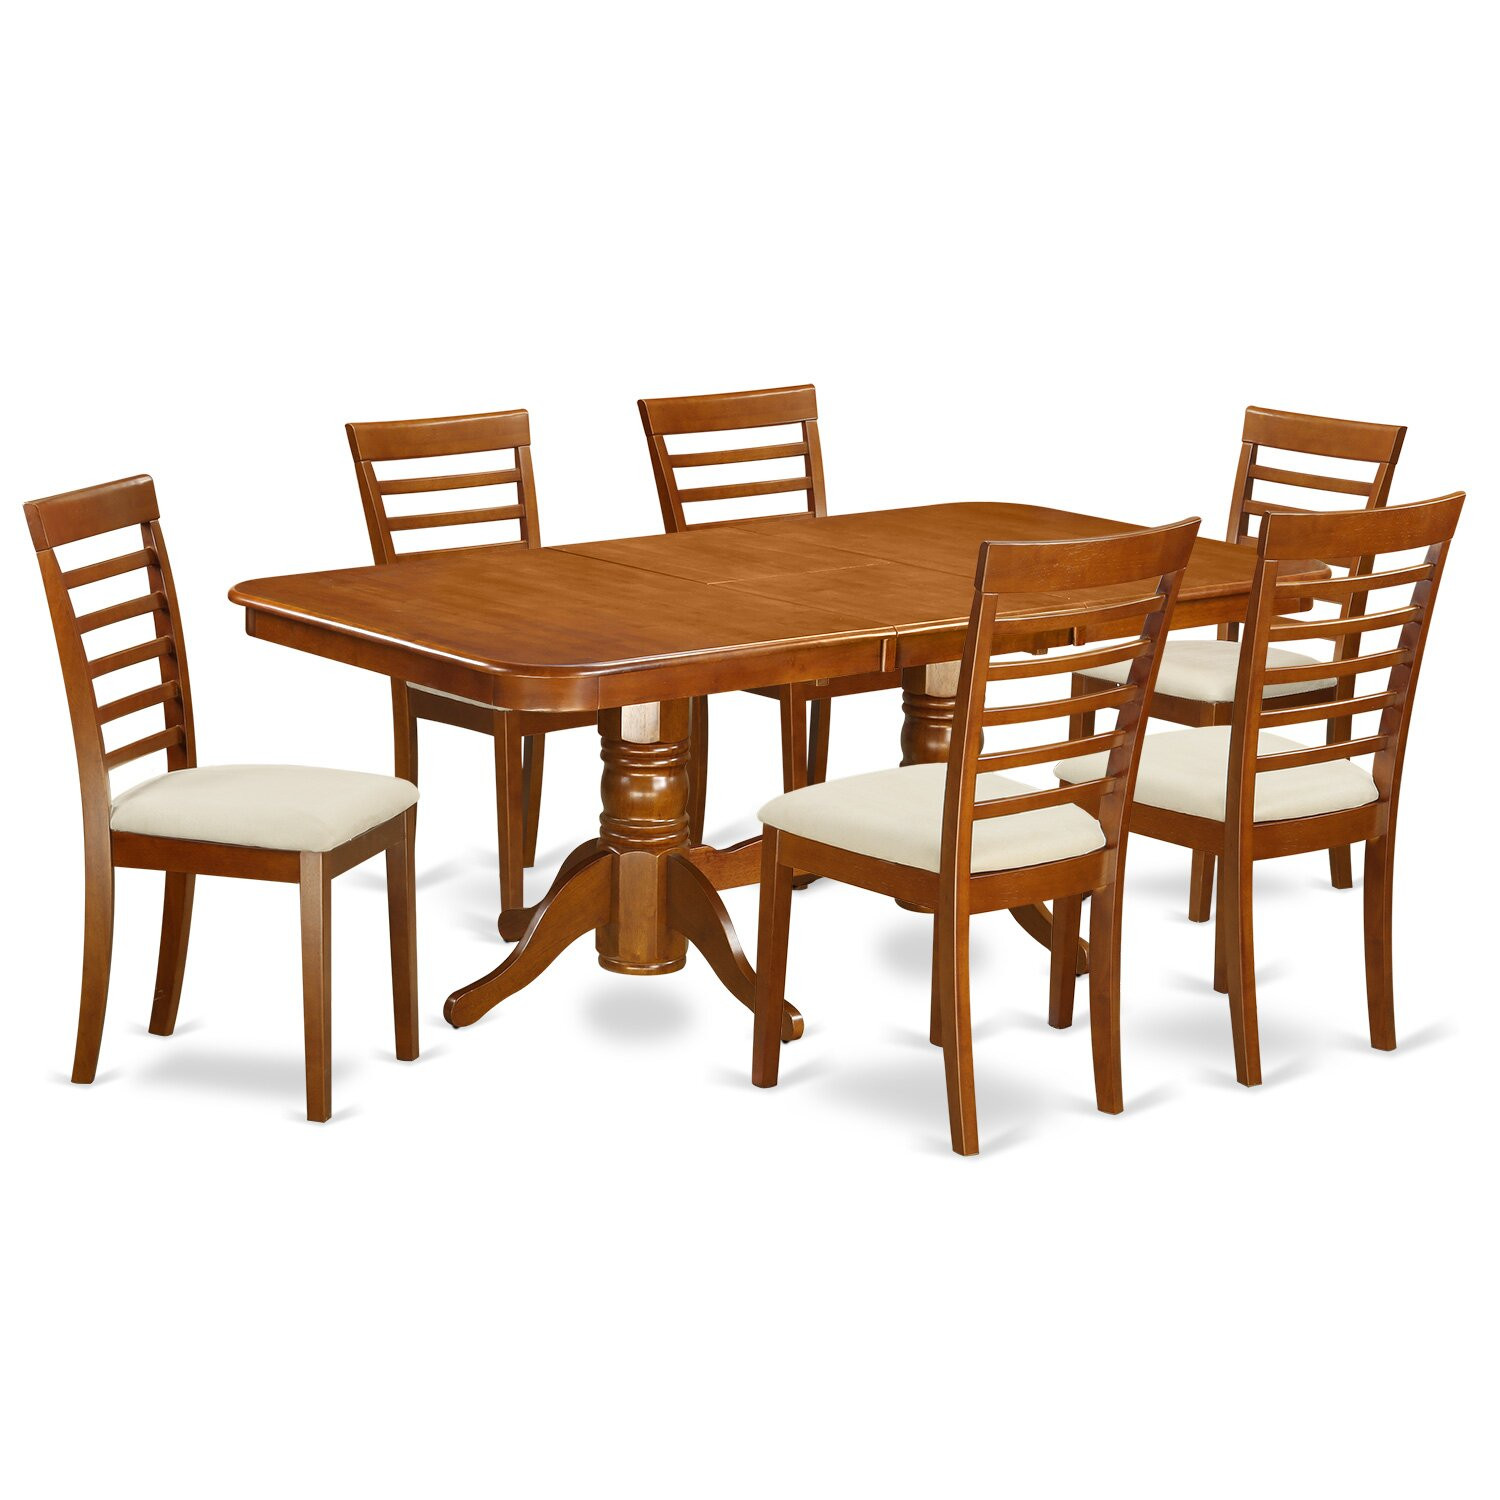 East west napoleon 7 piece dining set reviews wayfair for Furniture 7 reviews